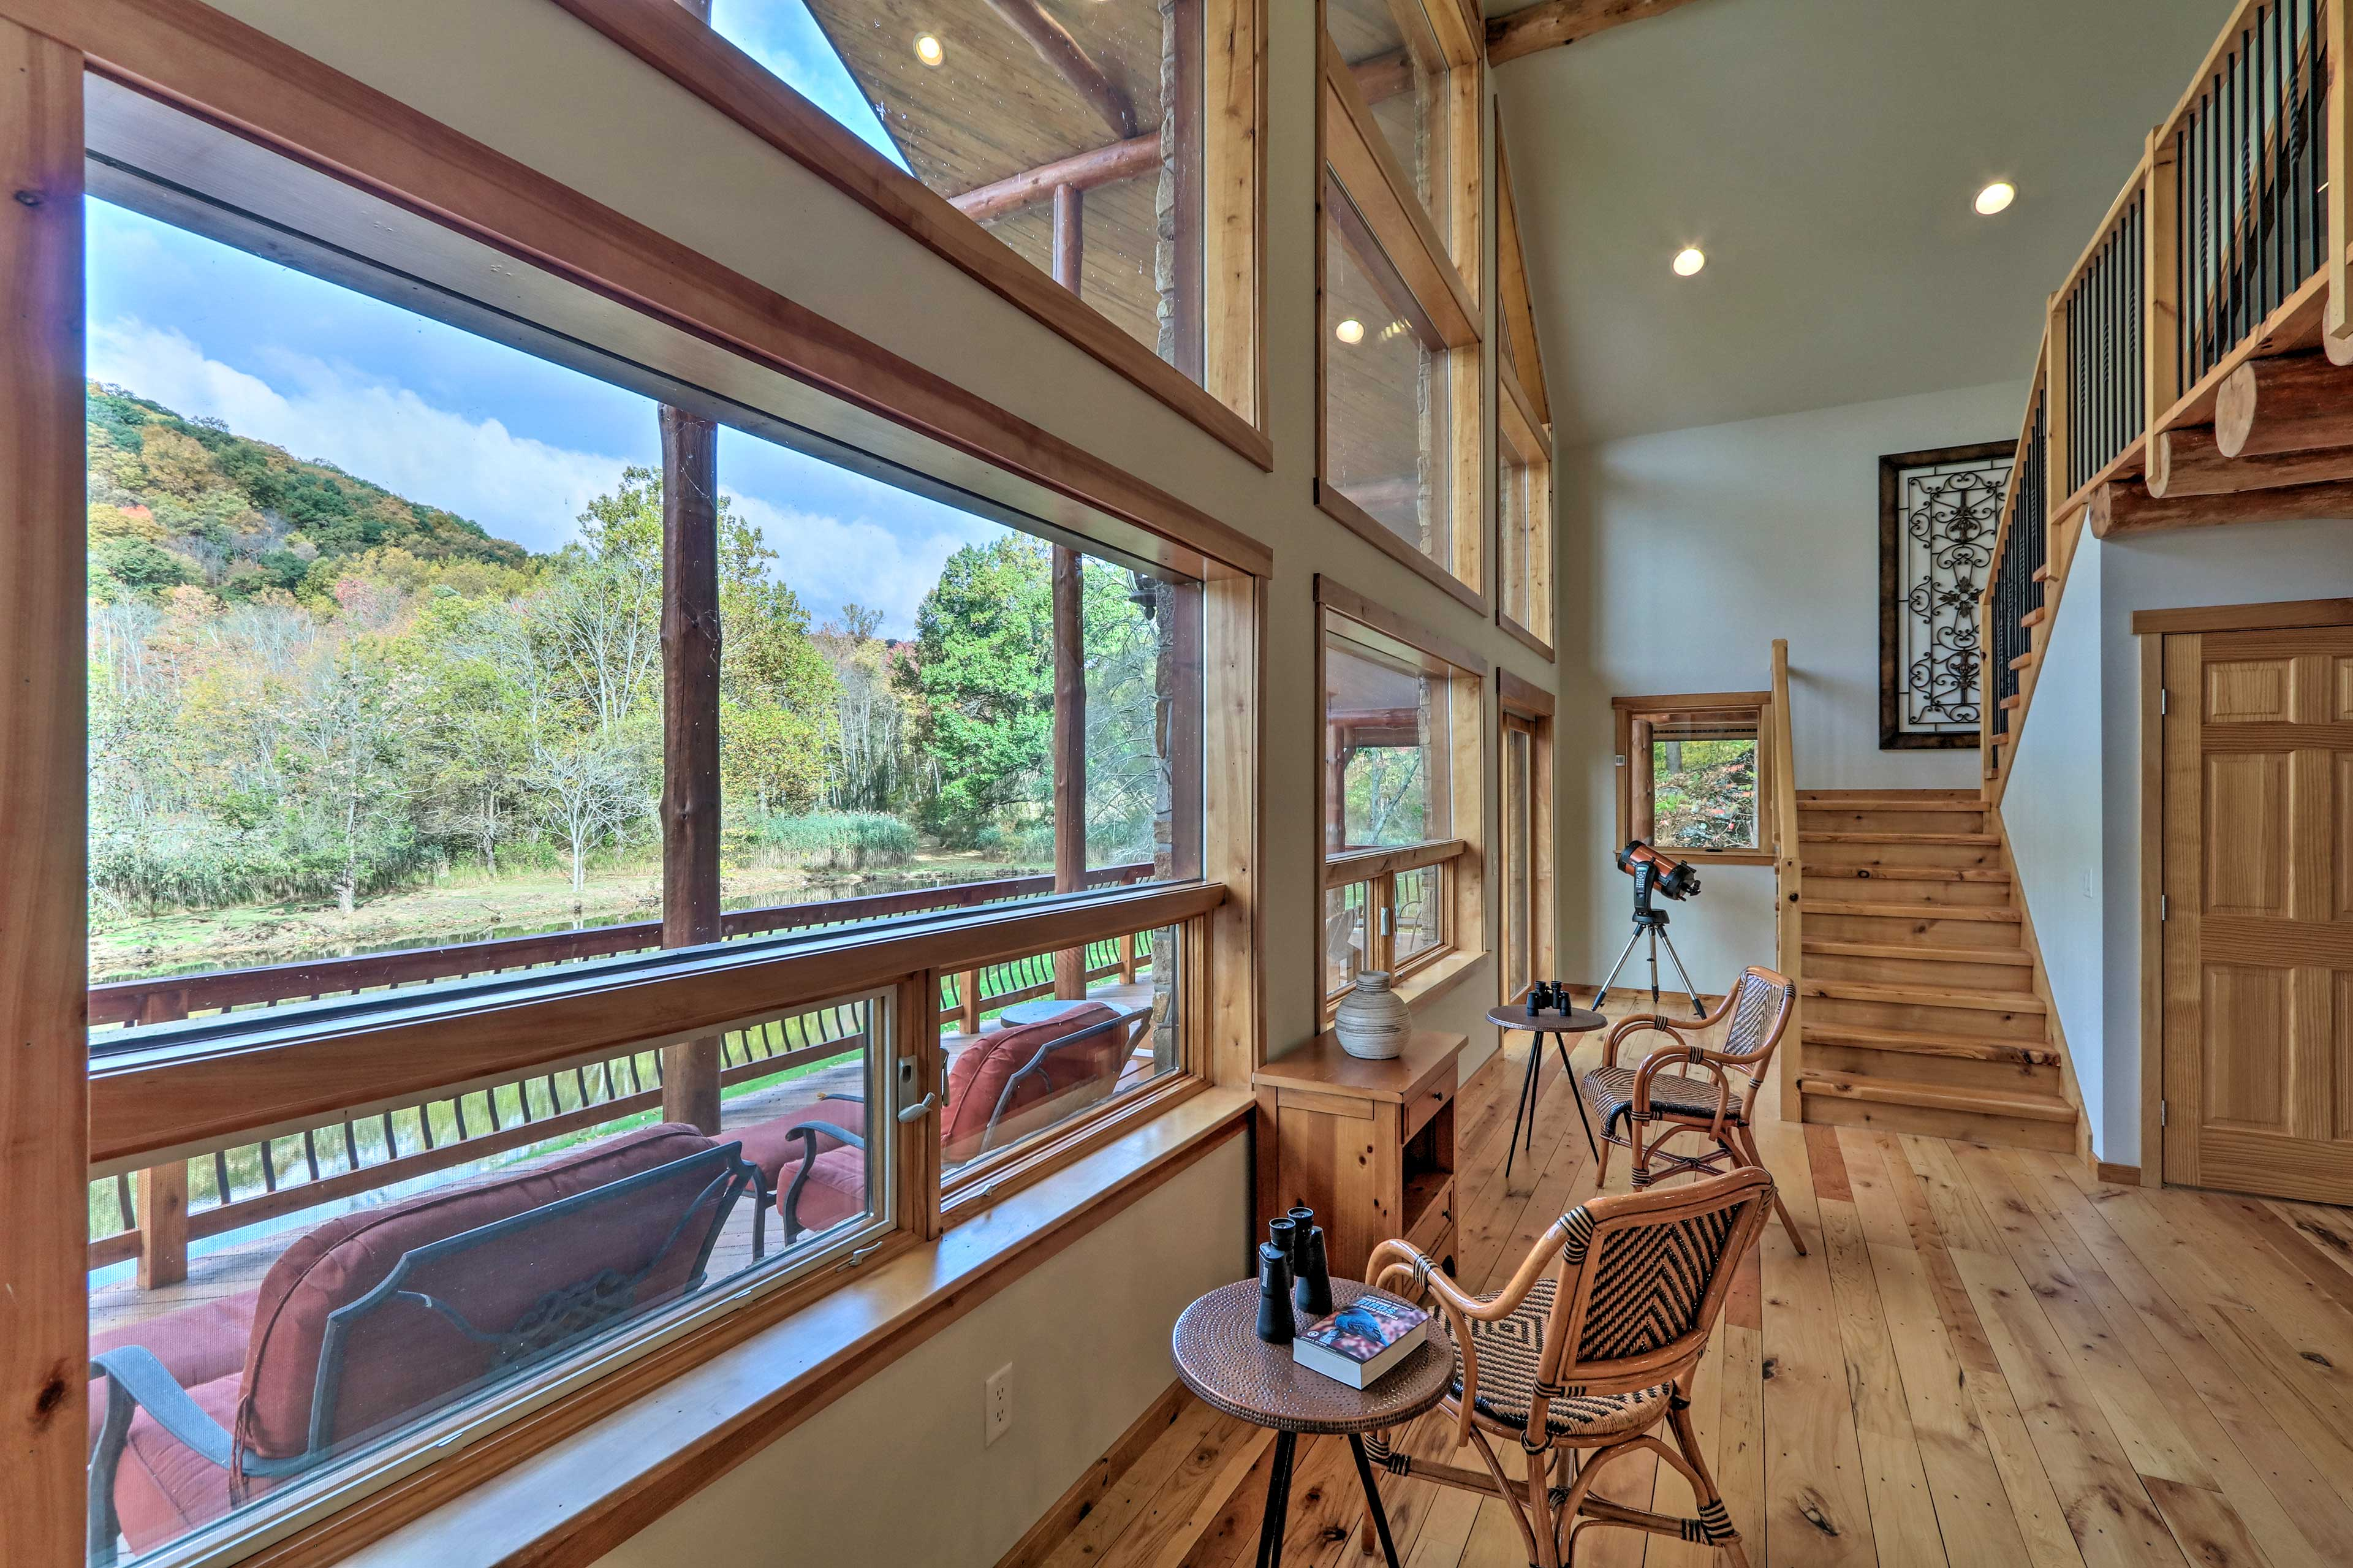 Sit back and relax as you bird watch from the comfort of the cabin.